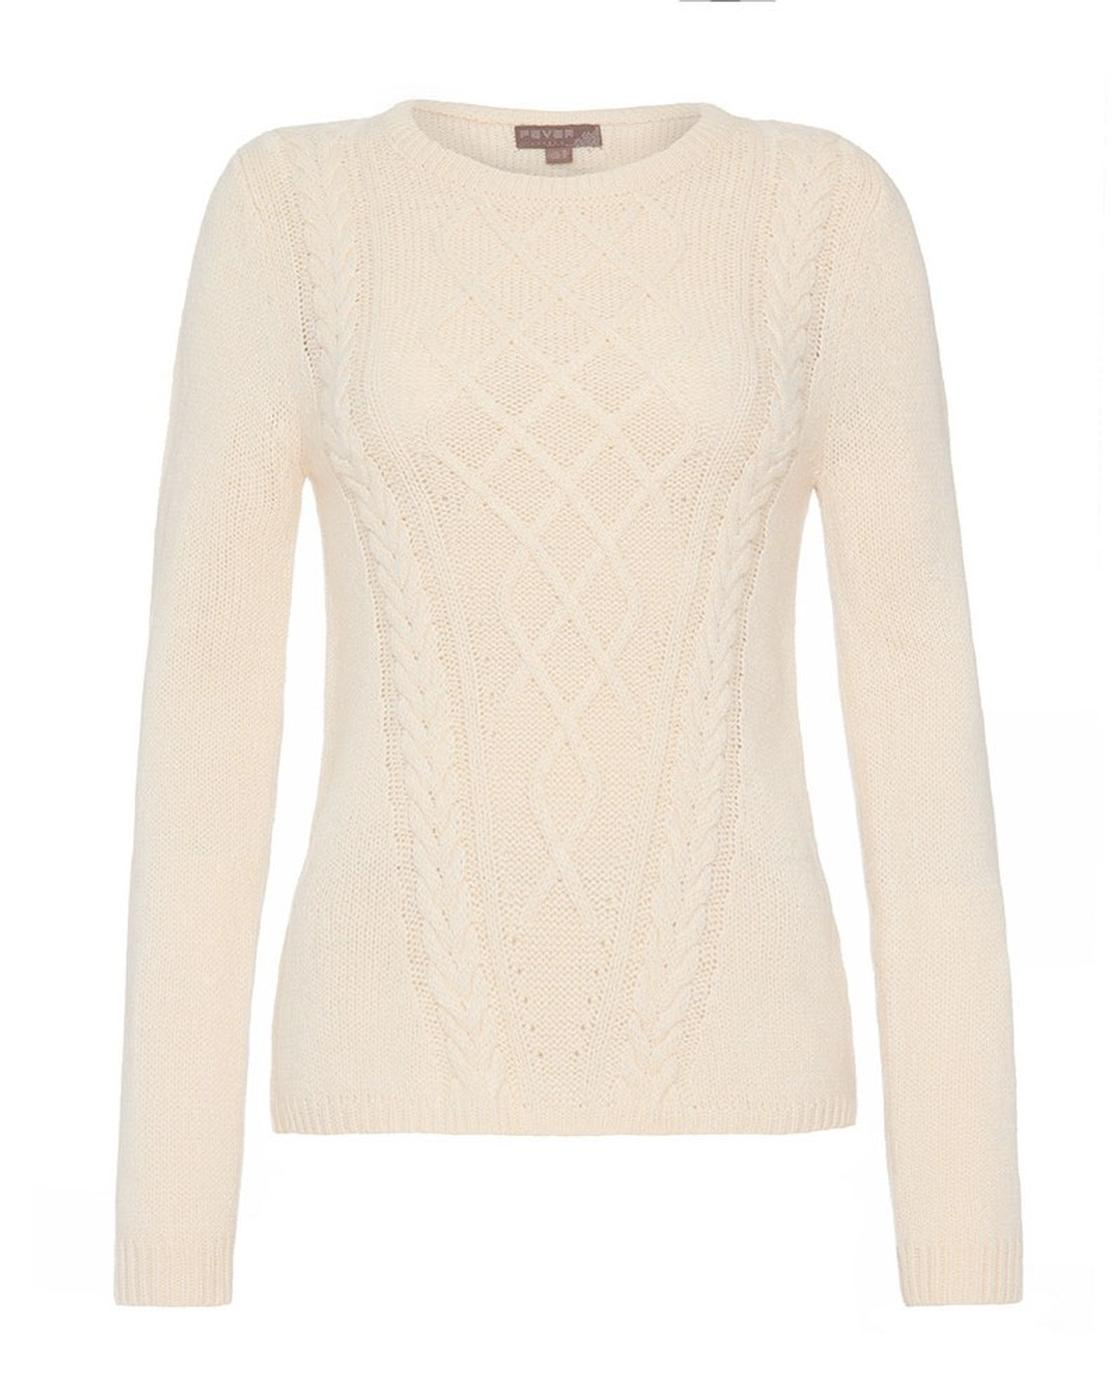 Montana FEVER Retro Vintage Cable Knit  Jumper